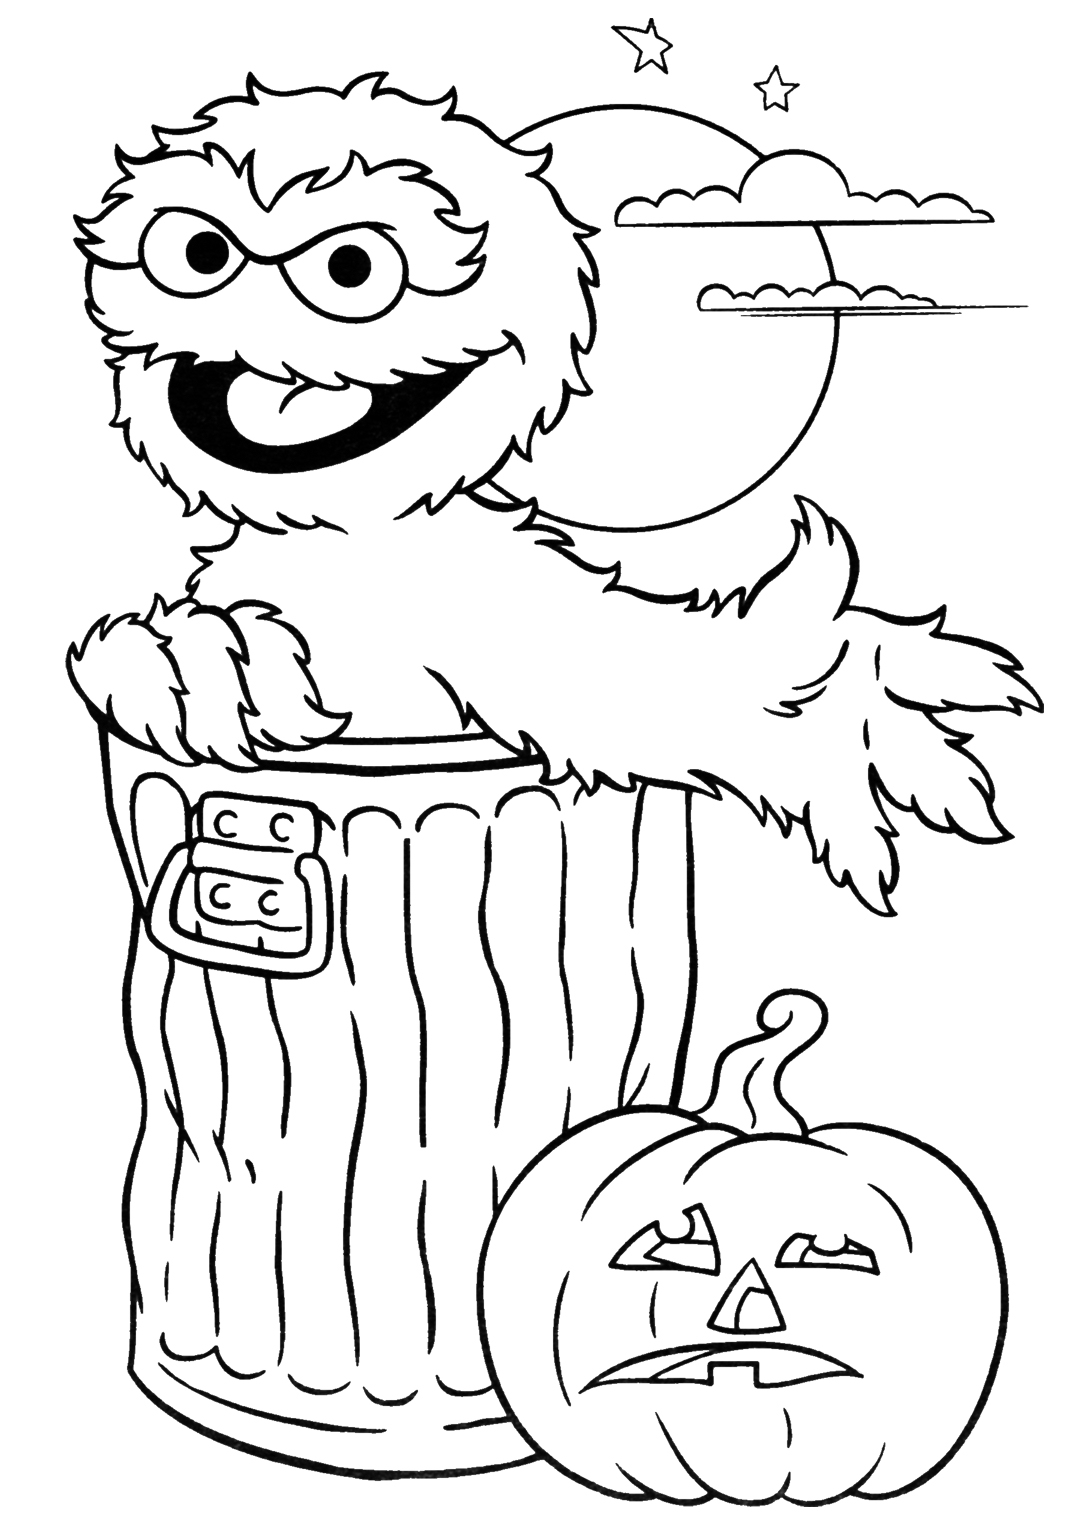 Halloween printable coloring pages minnesota miranda for Coloring pages for halloween free printable